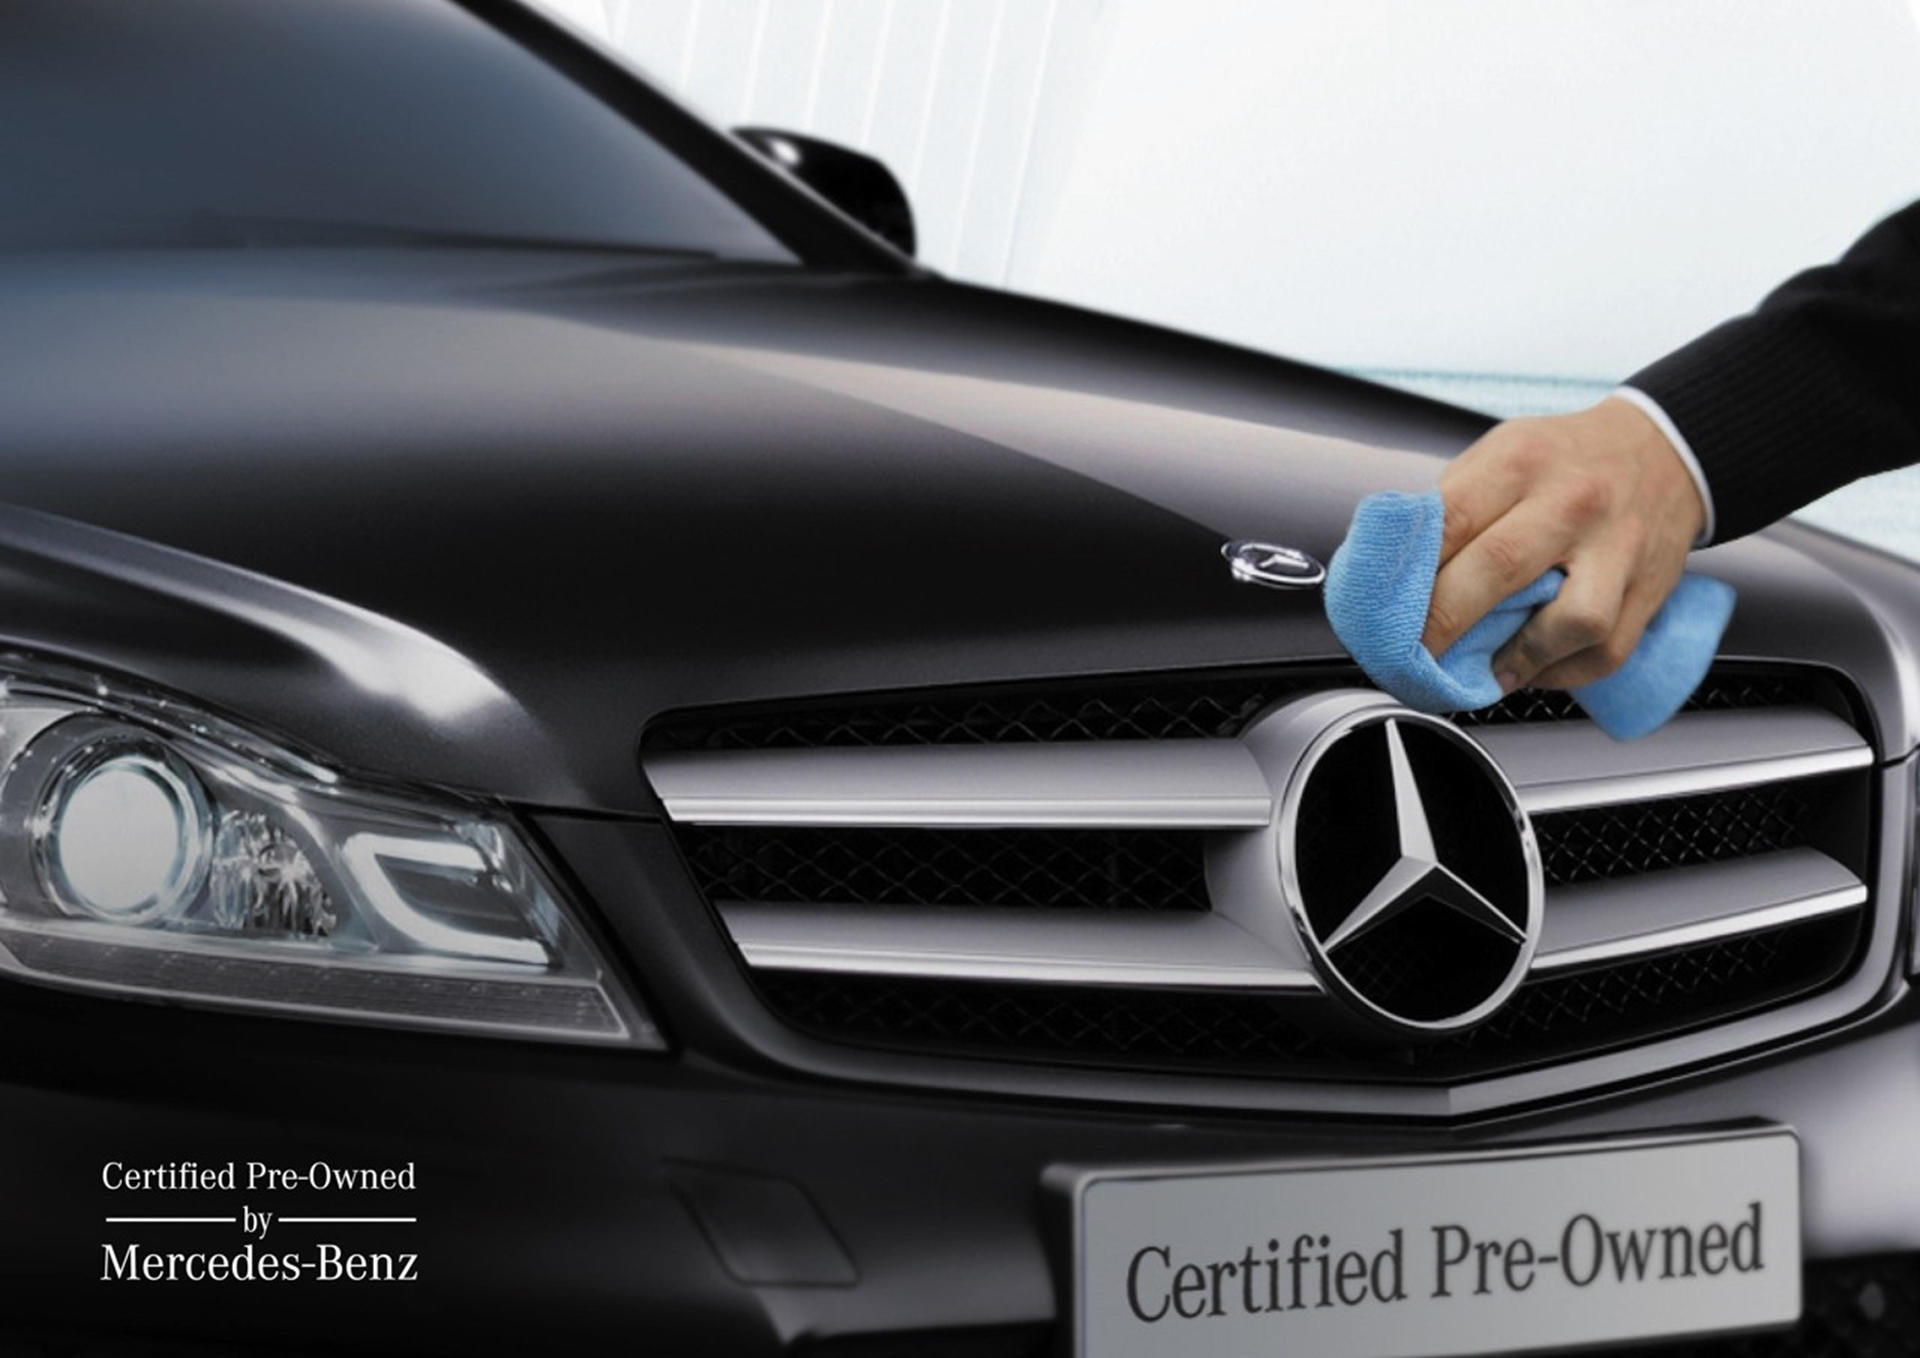 Mercedes benz certified pre owned guarantees peace of mind for Certified pre owned mercedes benz